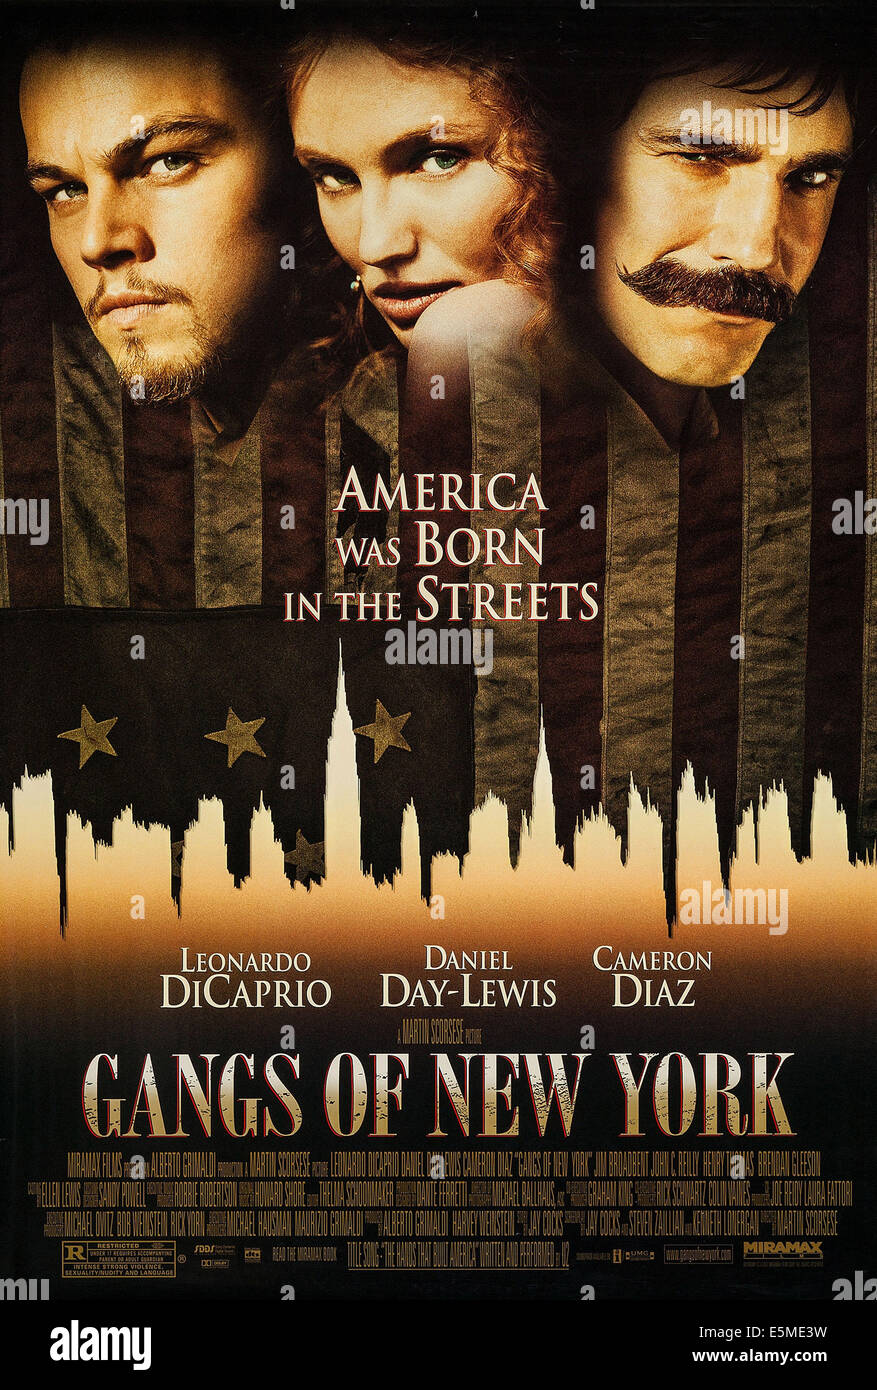 GANGS OF NEW YORK, US poster art, from left: Leonardo DiCaprio, Cameron Diaz, Daniel Day-Lewis, 2002, ©Miramax - Stock Image